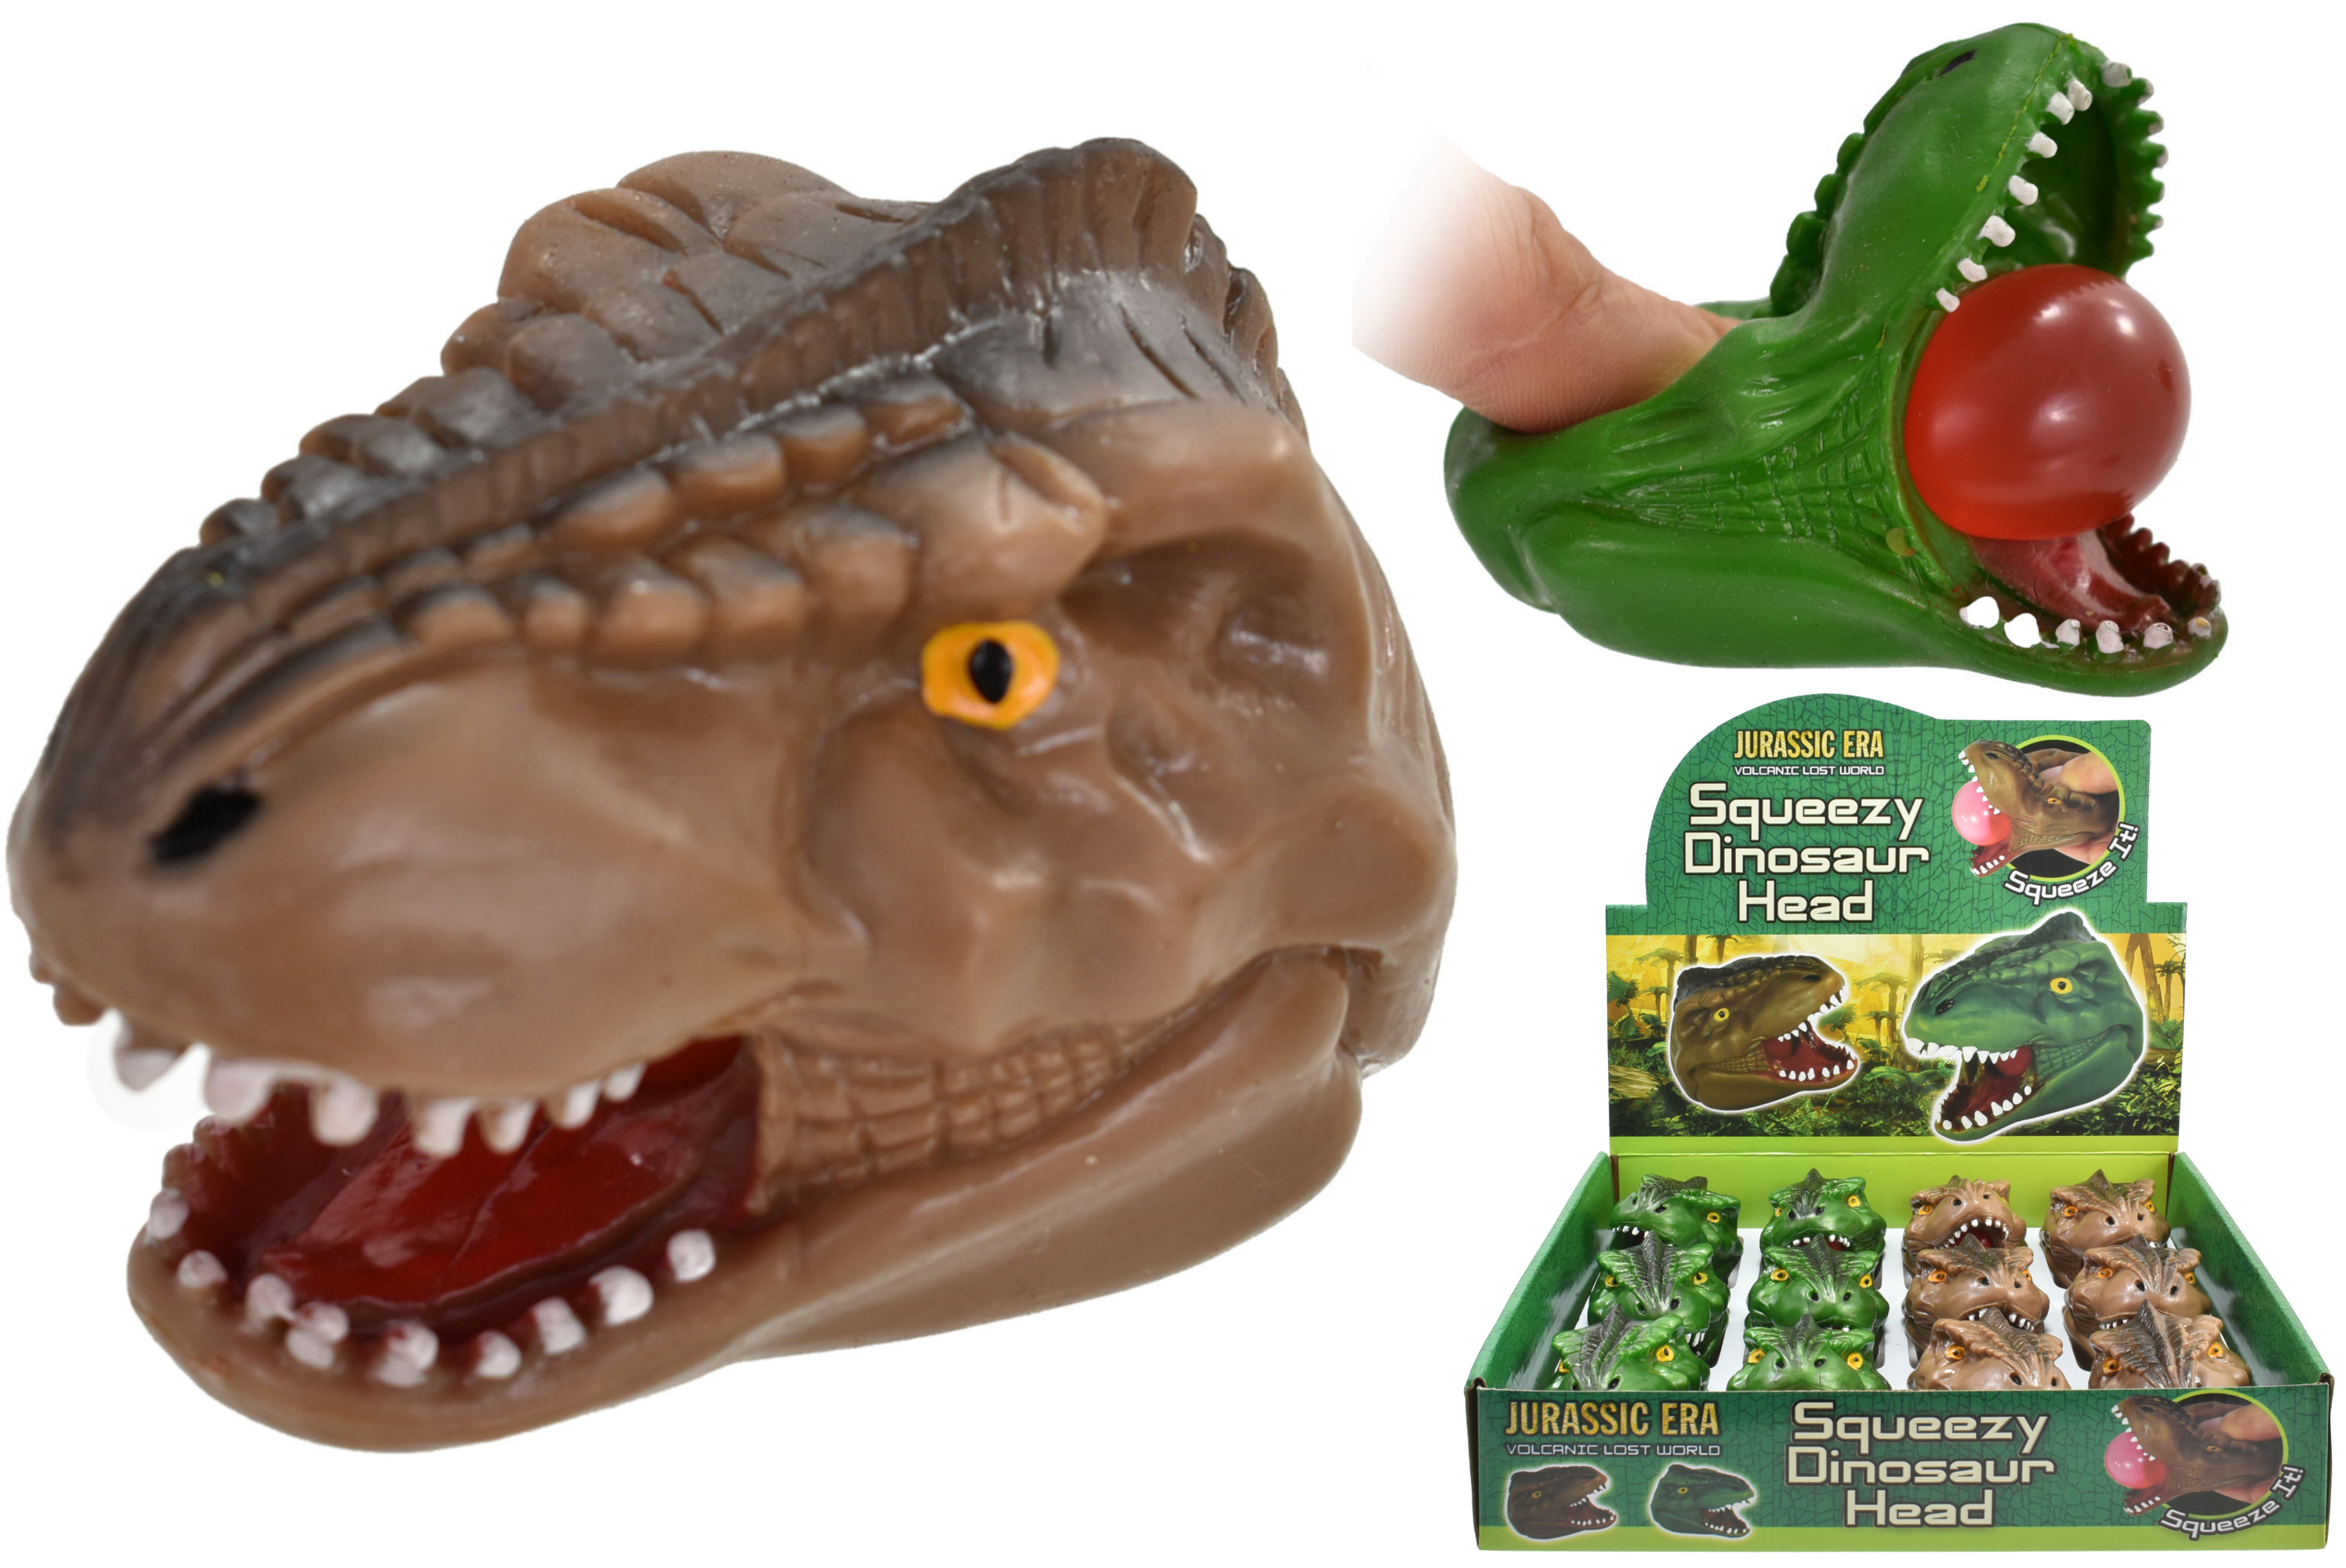 Squeeze Dinosaur Head In Display Box